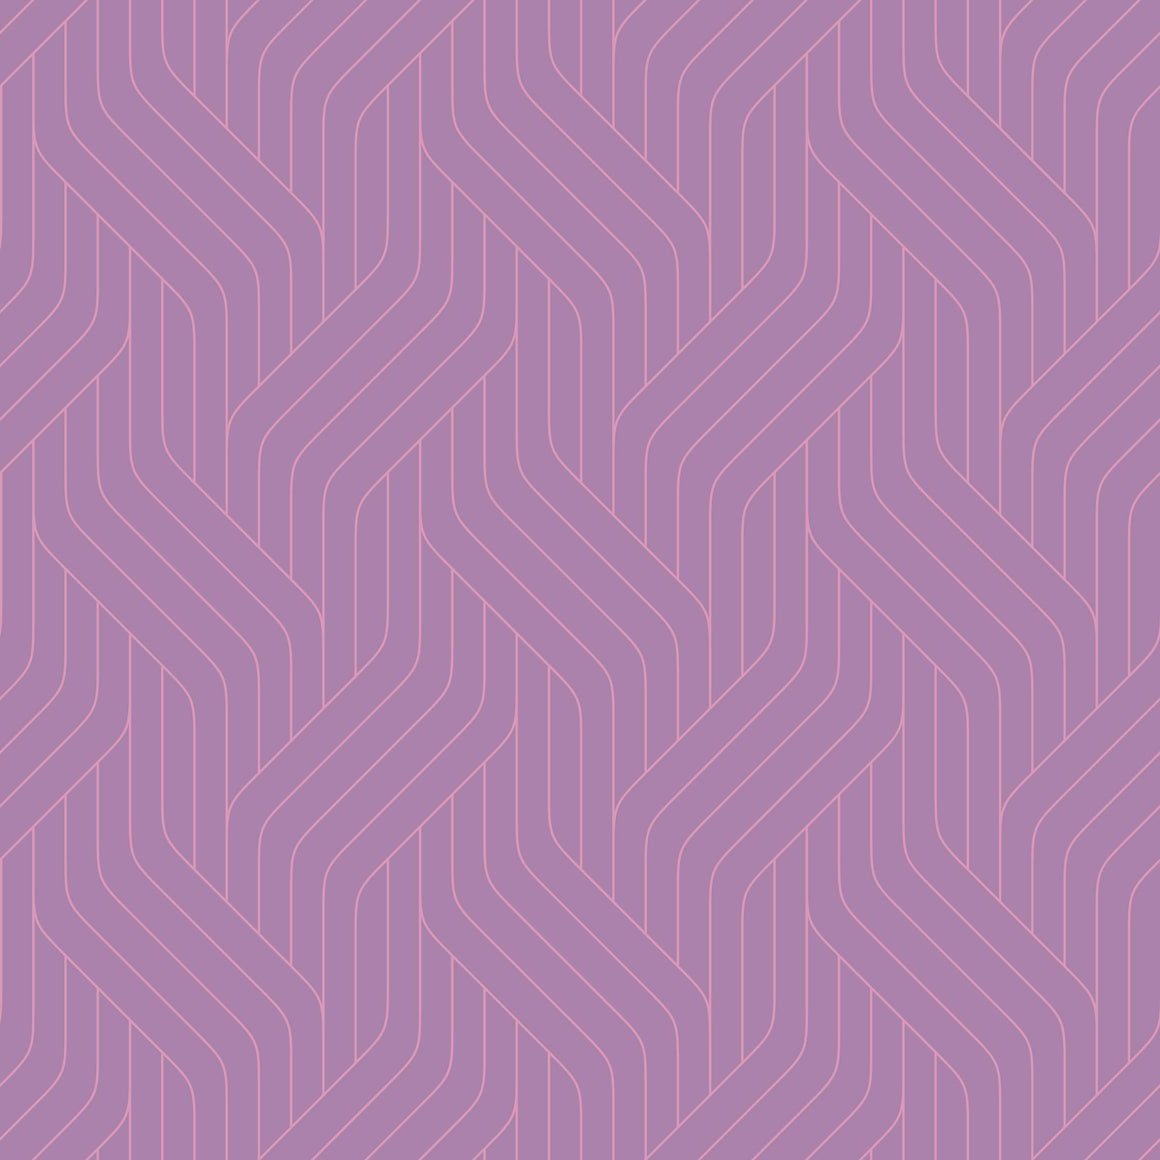 Products Tagged Plum Interior Ink Navy Fuse Box Groups Of Light Green And Lines Weaving Inbetween Each Other